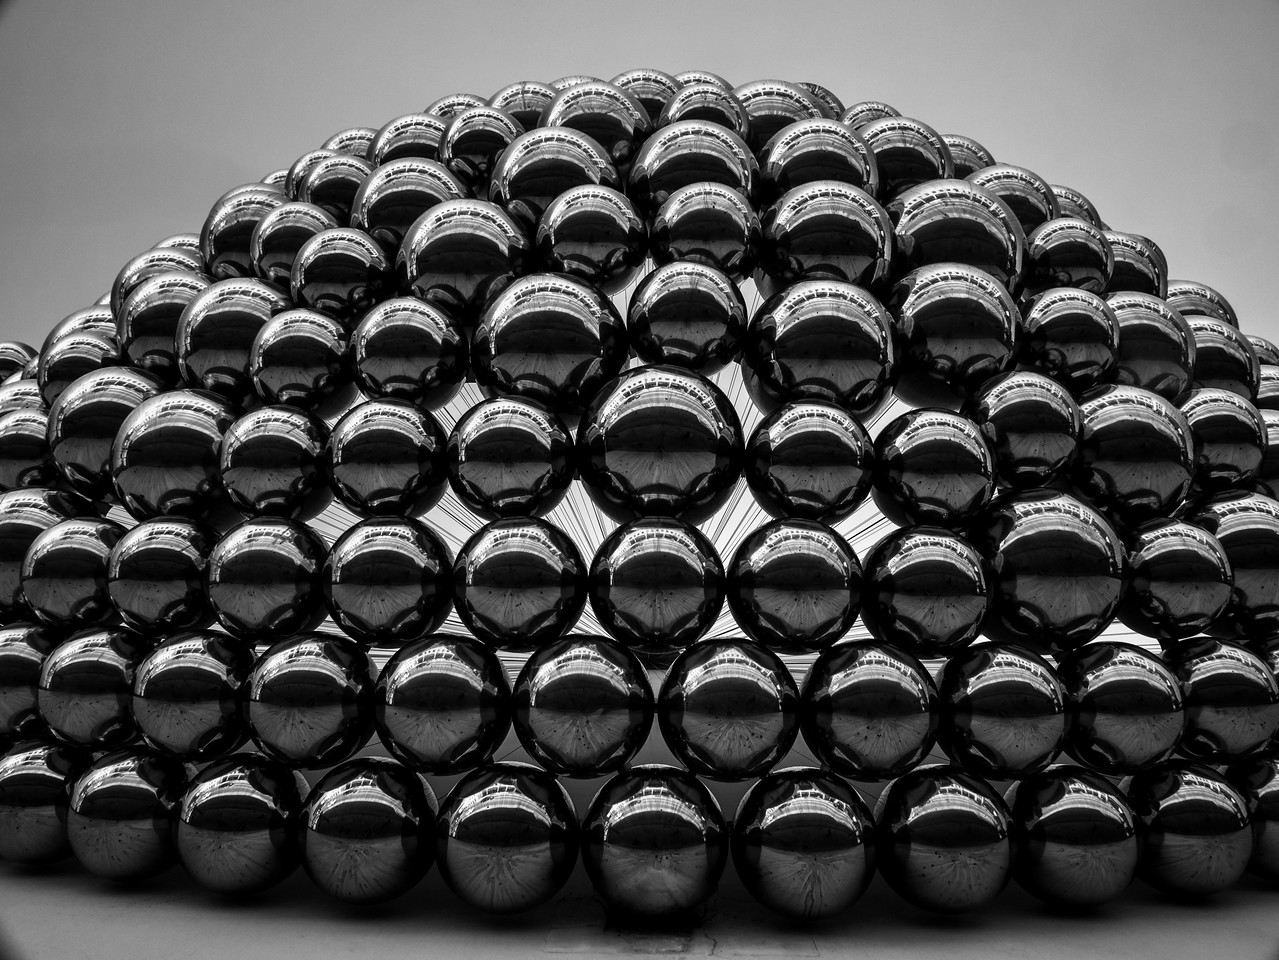 Perceiving scale can be tricky. These metals balls look smallish (like the ones swing back and forth). Since there are no clues for size it is going to hard to tell.. They are actual pretty large. At least bowling ball size and the whole installation is on the side of a parking garage In Santa Monica